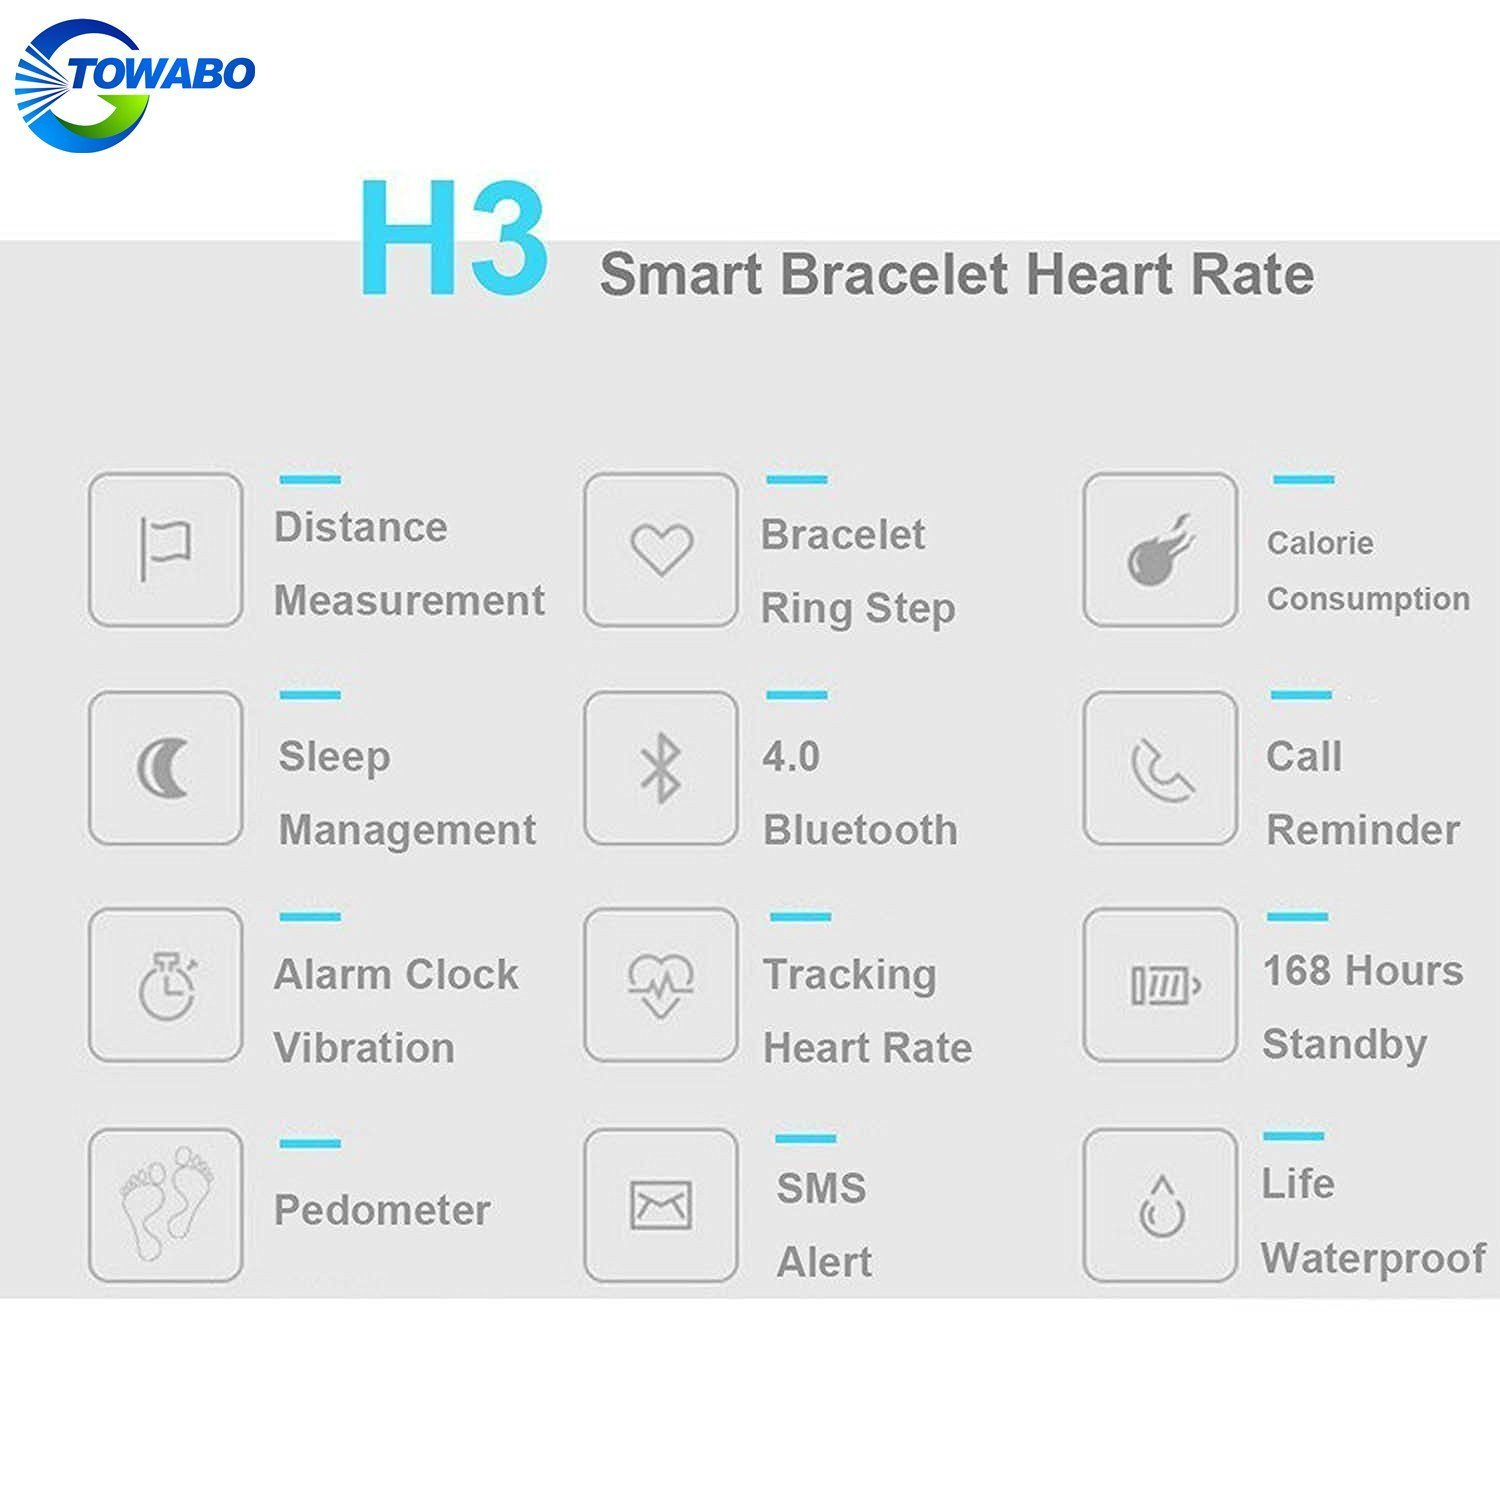 TOWABO Fitness Tracker with Heart Rate monitor E3S Activity Watch Step Walking Sleep Counter Wireless Wristband Pedometer Exercise Tracking Sweatproof